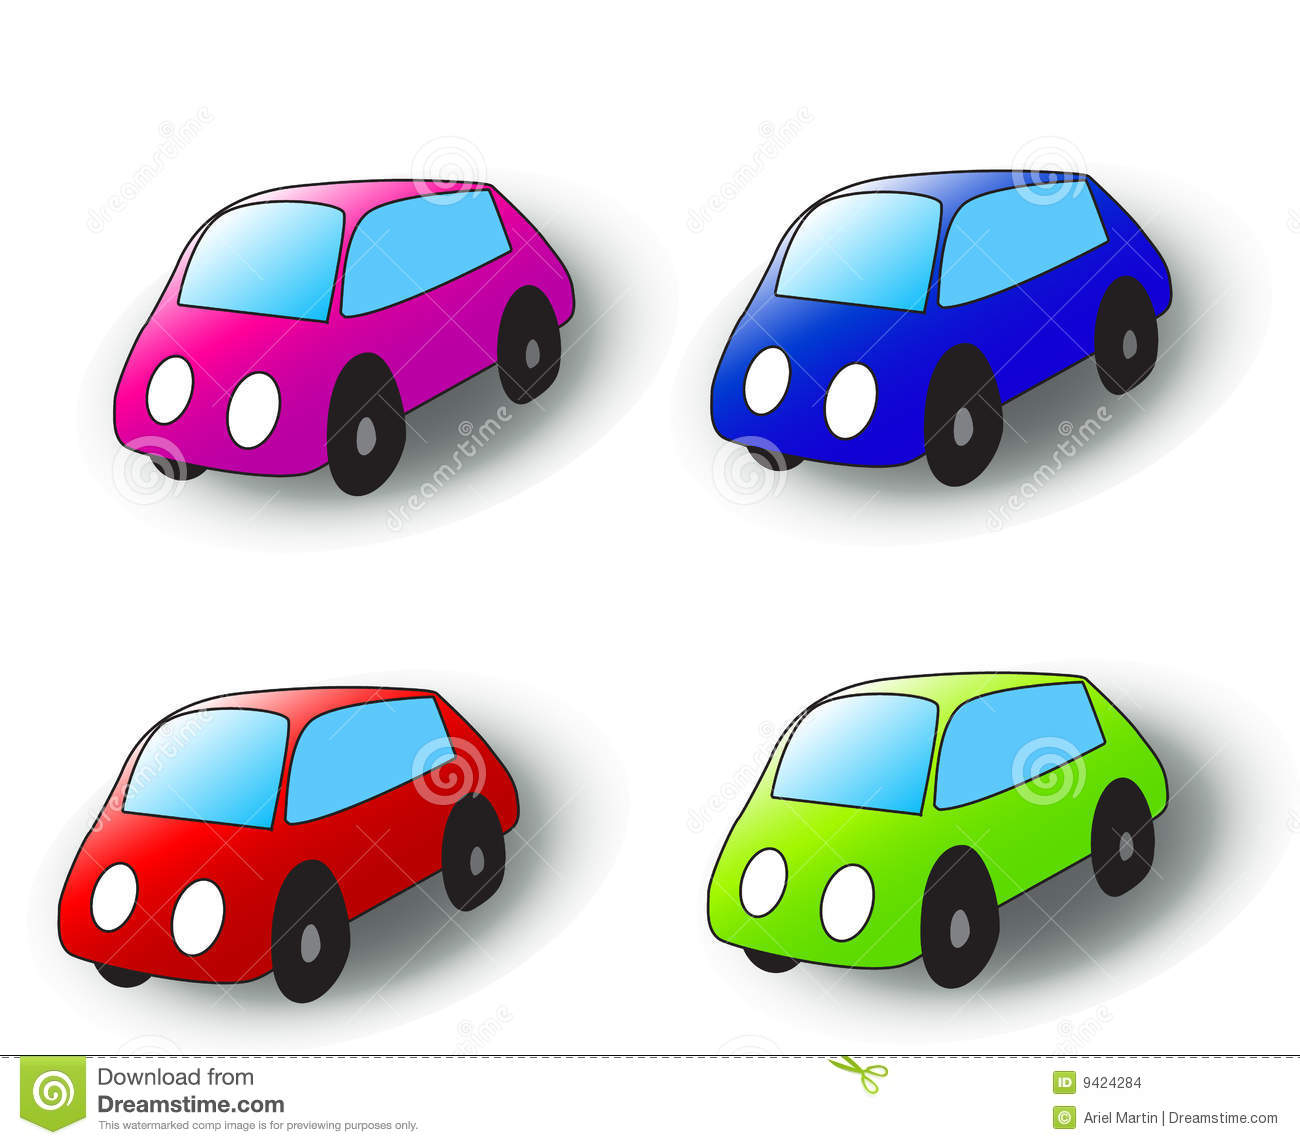 cartoon image vehicle color illustration compact automobile transportation car